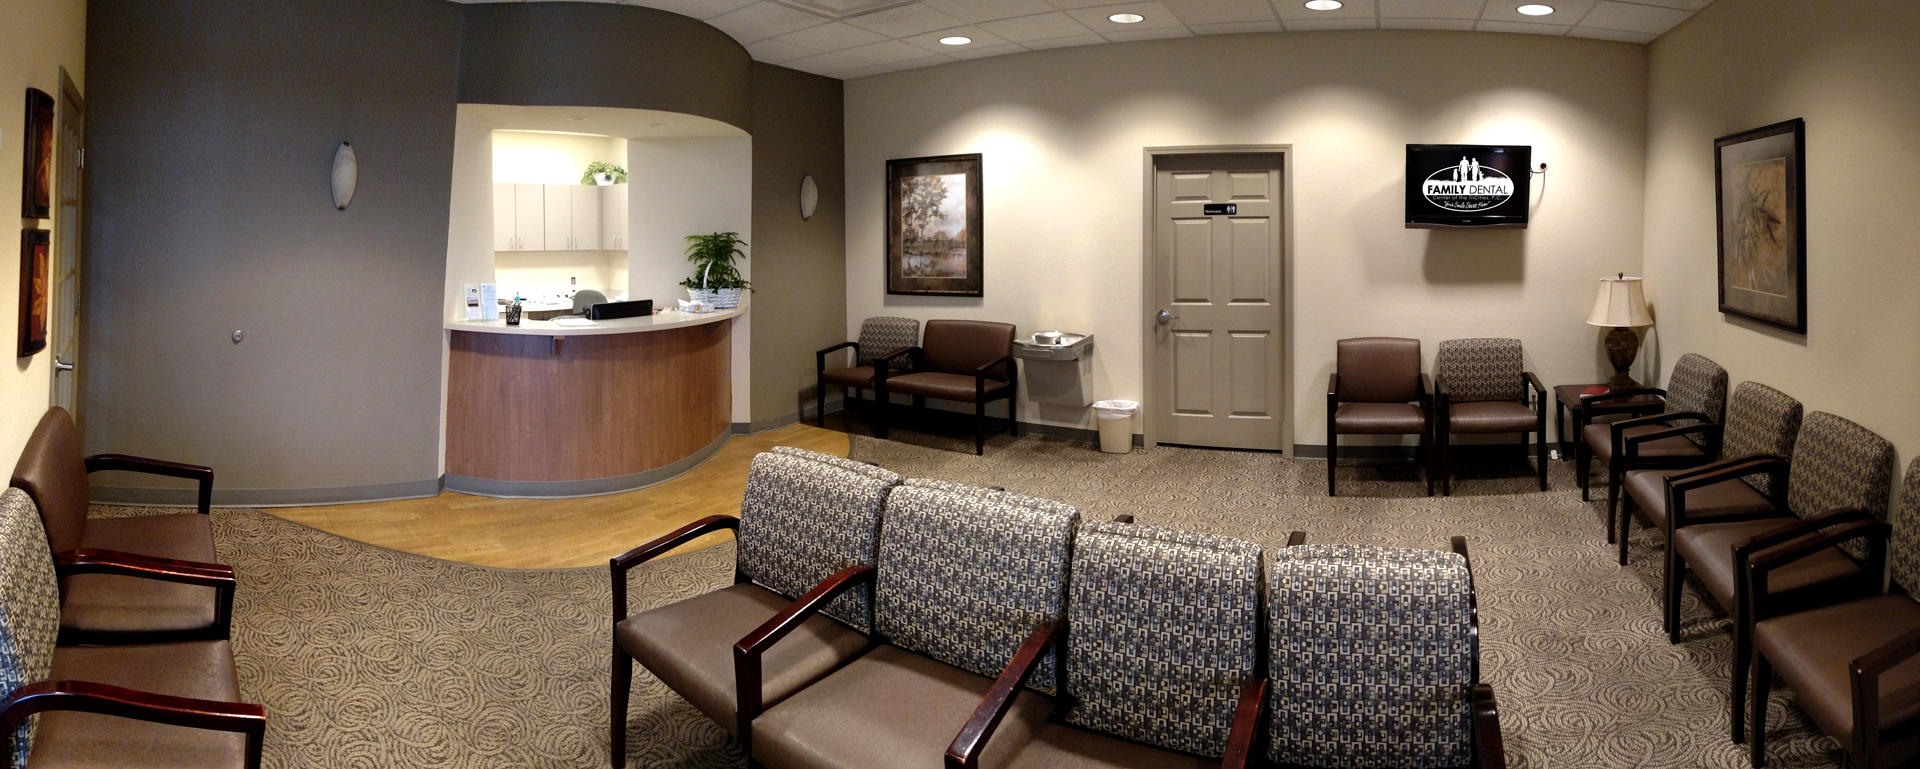 Family Dental Center, P.C. image 3